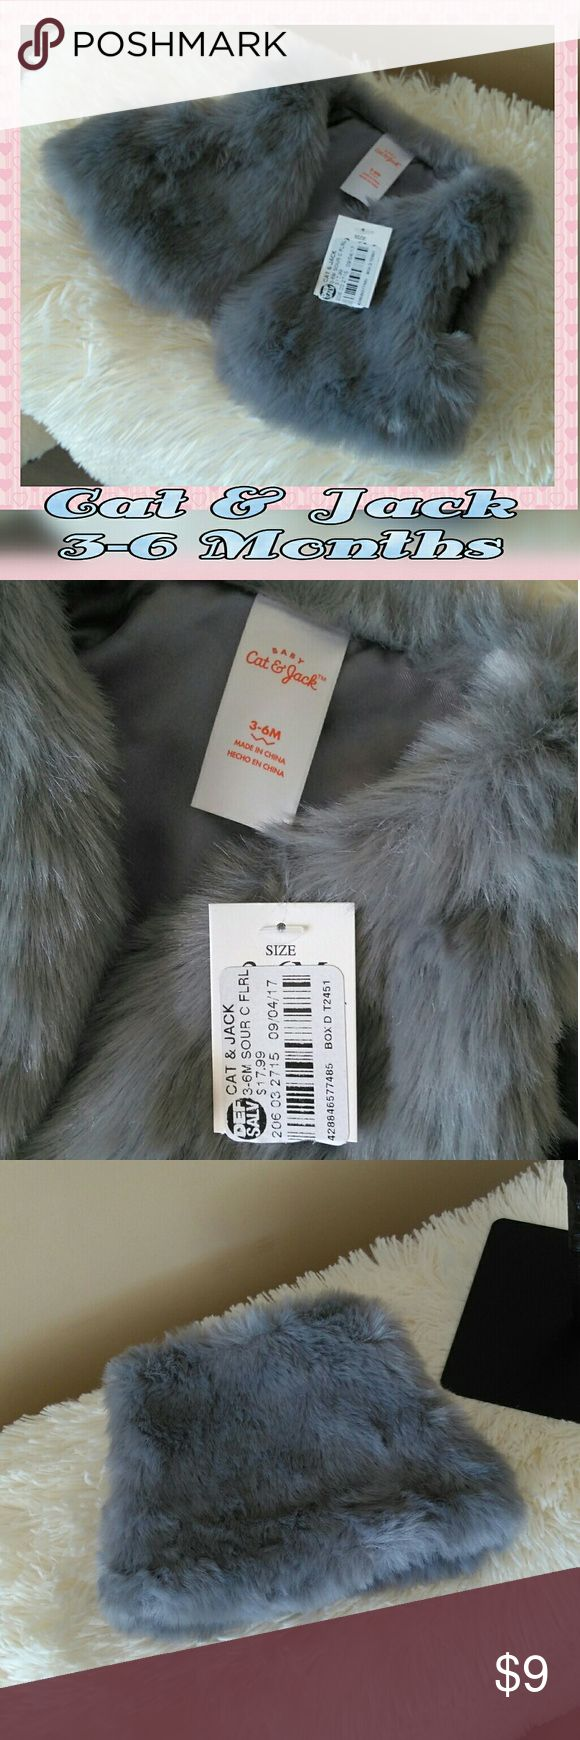 NWT Cat & Jack Baby Faux Fur Gray Vest Adorable Cat & Jack brand gray faux fur vest comes new with original tag and in perfect new condition. Size is 3-6 months. Pictures show actual color. Very plush and cute! Thank you for visiting my closet 💖 Cat & Jack Jackets & Coats Vests